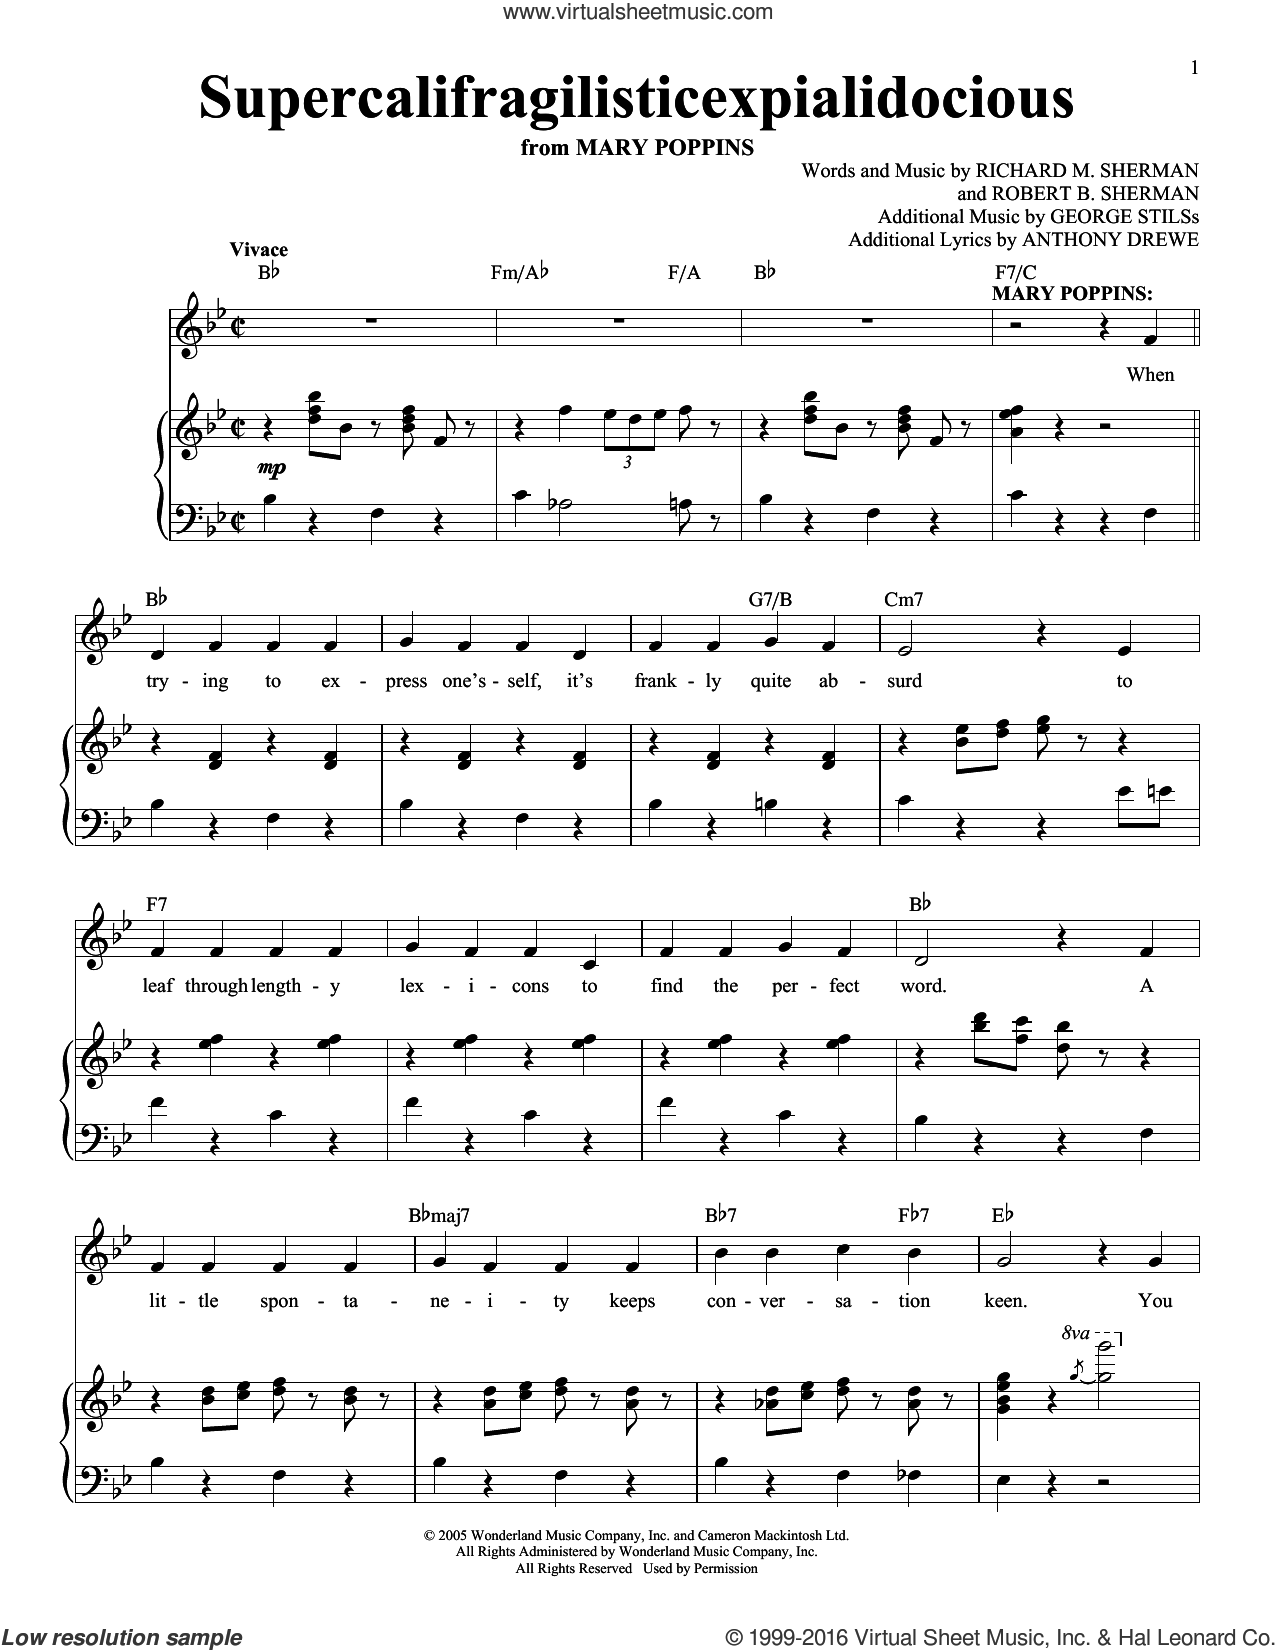 Supercalifragilisticexpialidocious sheet music for voice and piano by Richard & Robert Sherman, Robert Sherman, Anthony Drewe, George Stiles, Richard M. Sherman and Robert B. Sherman, intermediate skill level